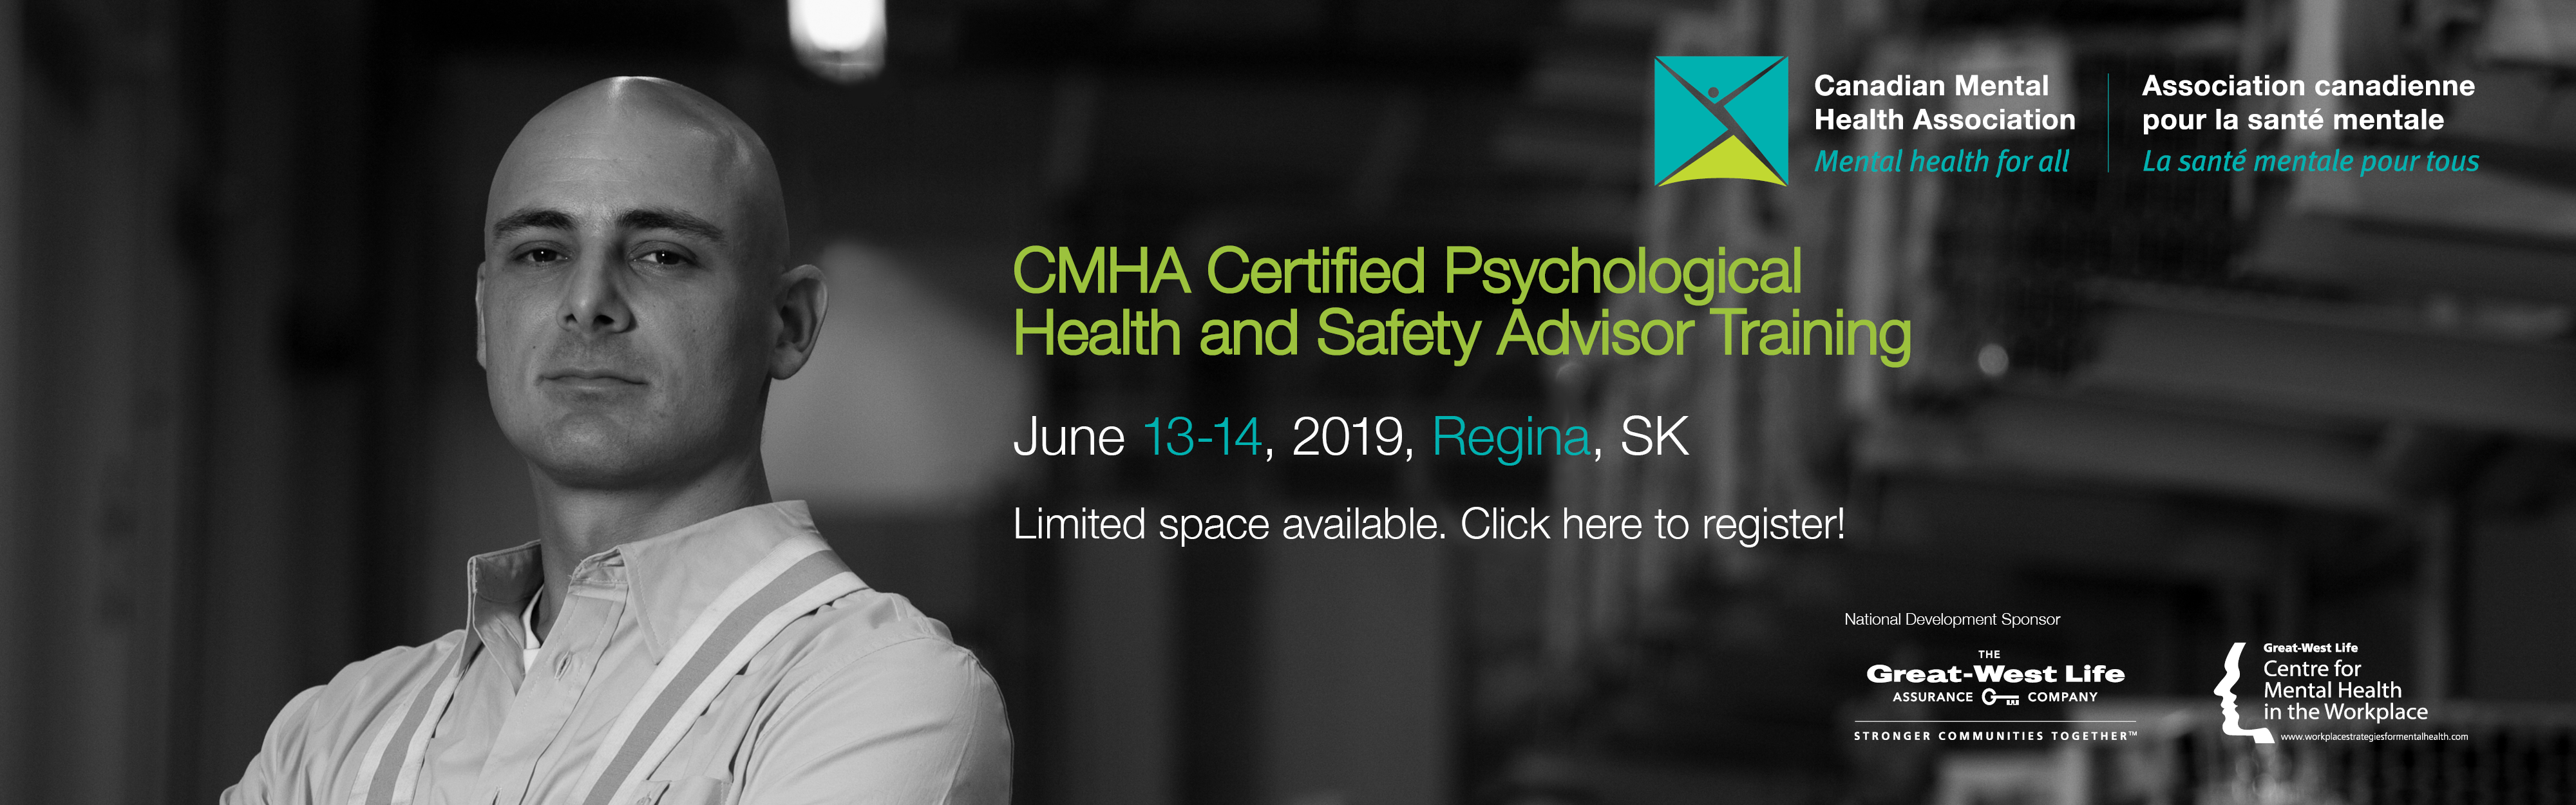 CMHA's Certified Psychological Health & Safety Advisor Training Program